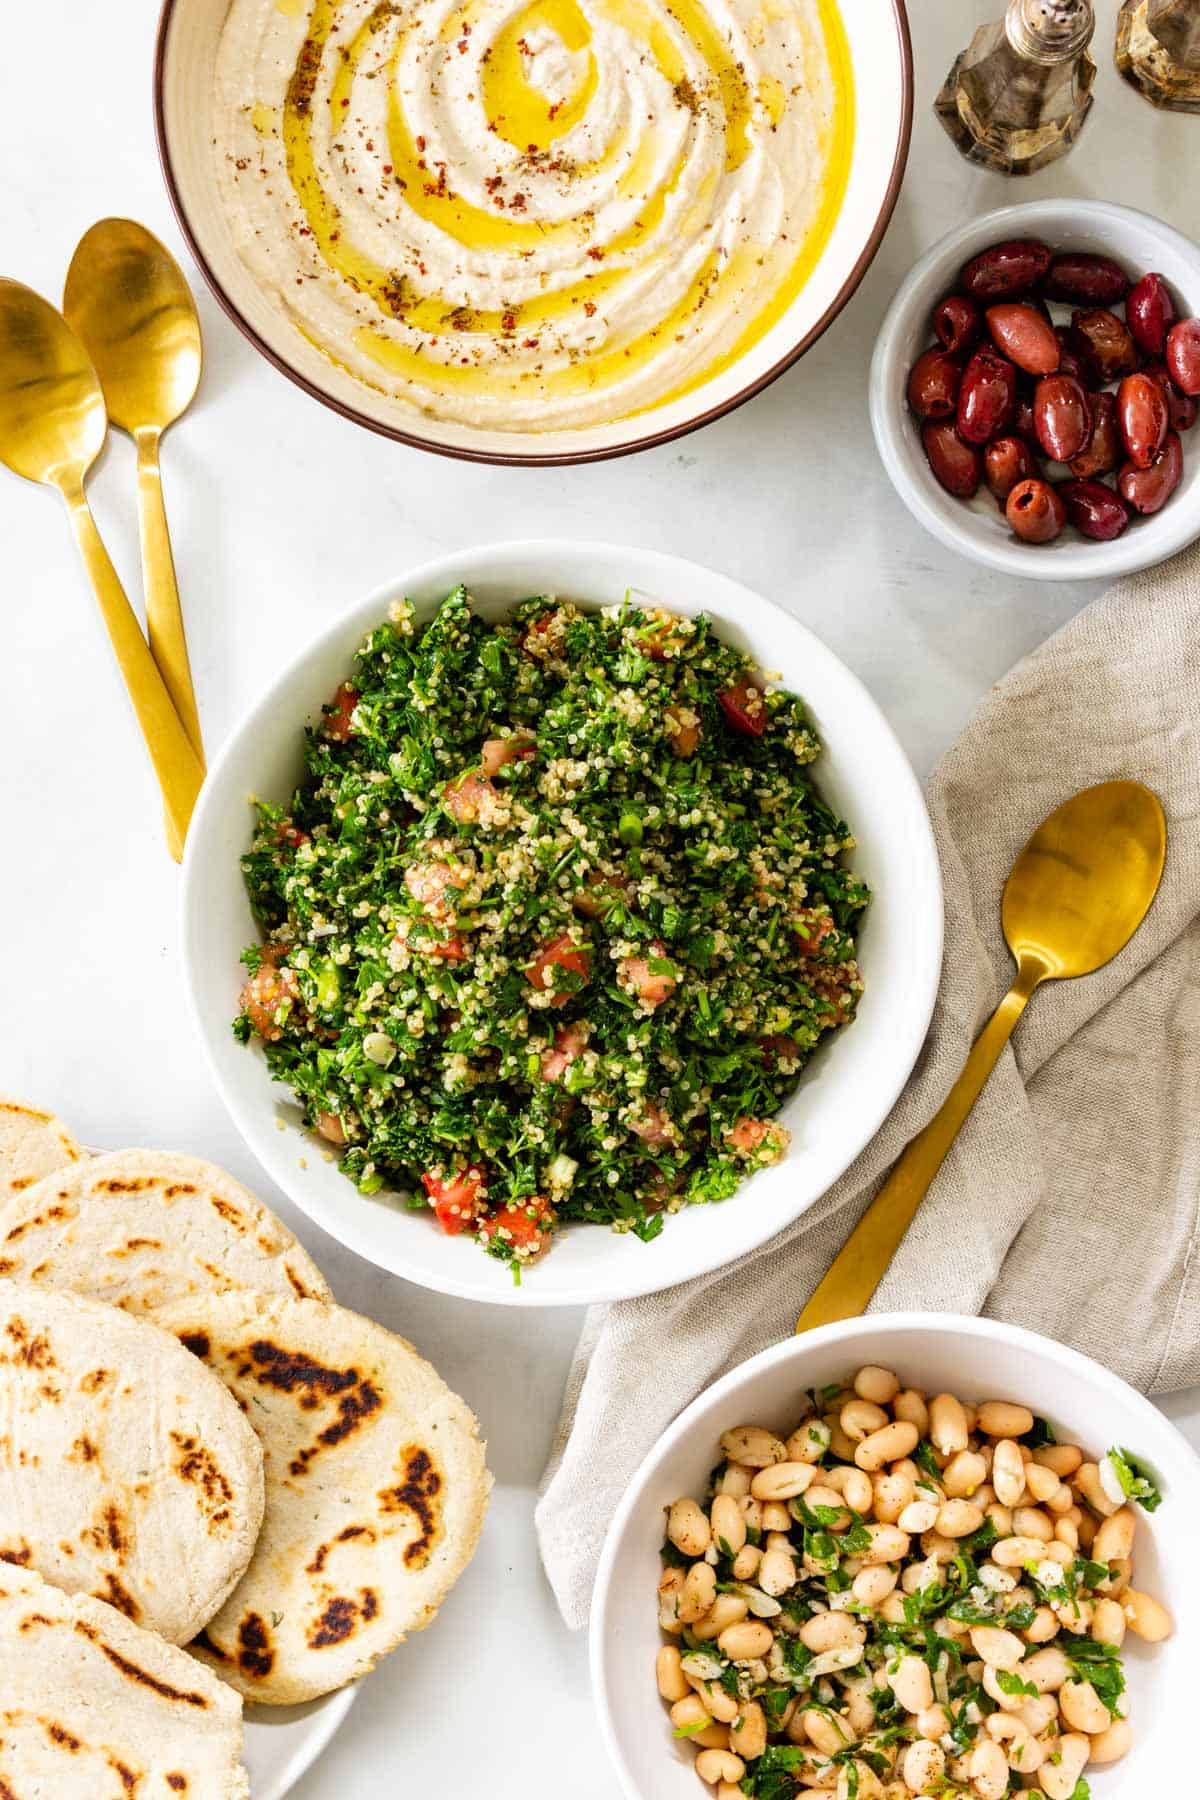 Plates of hummus, tabbouleh, olives, flatbread, and marinated beans are arranged on a table with gold silverware.